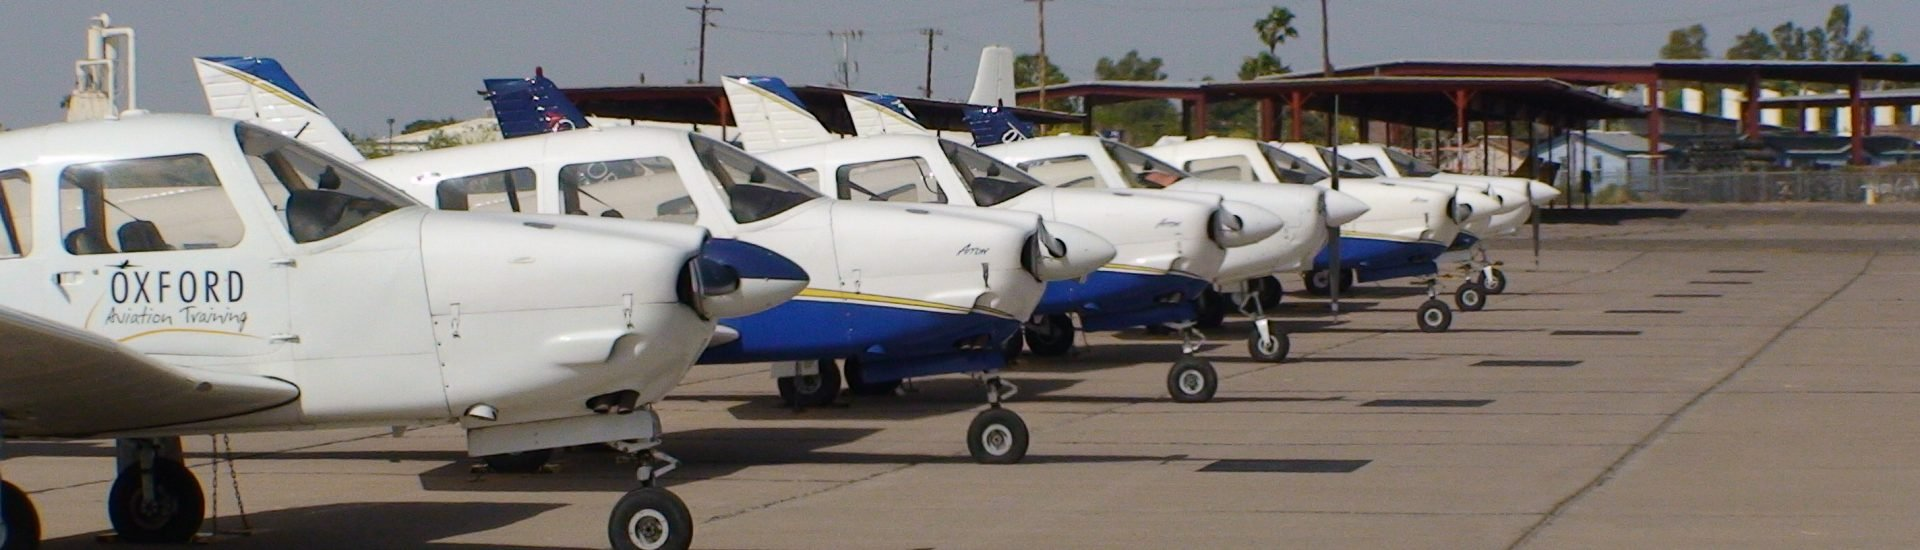 Line of Aircraft at Flight School